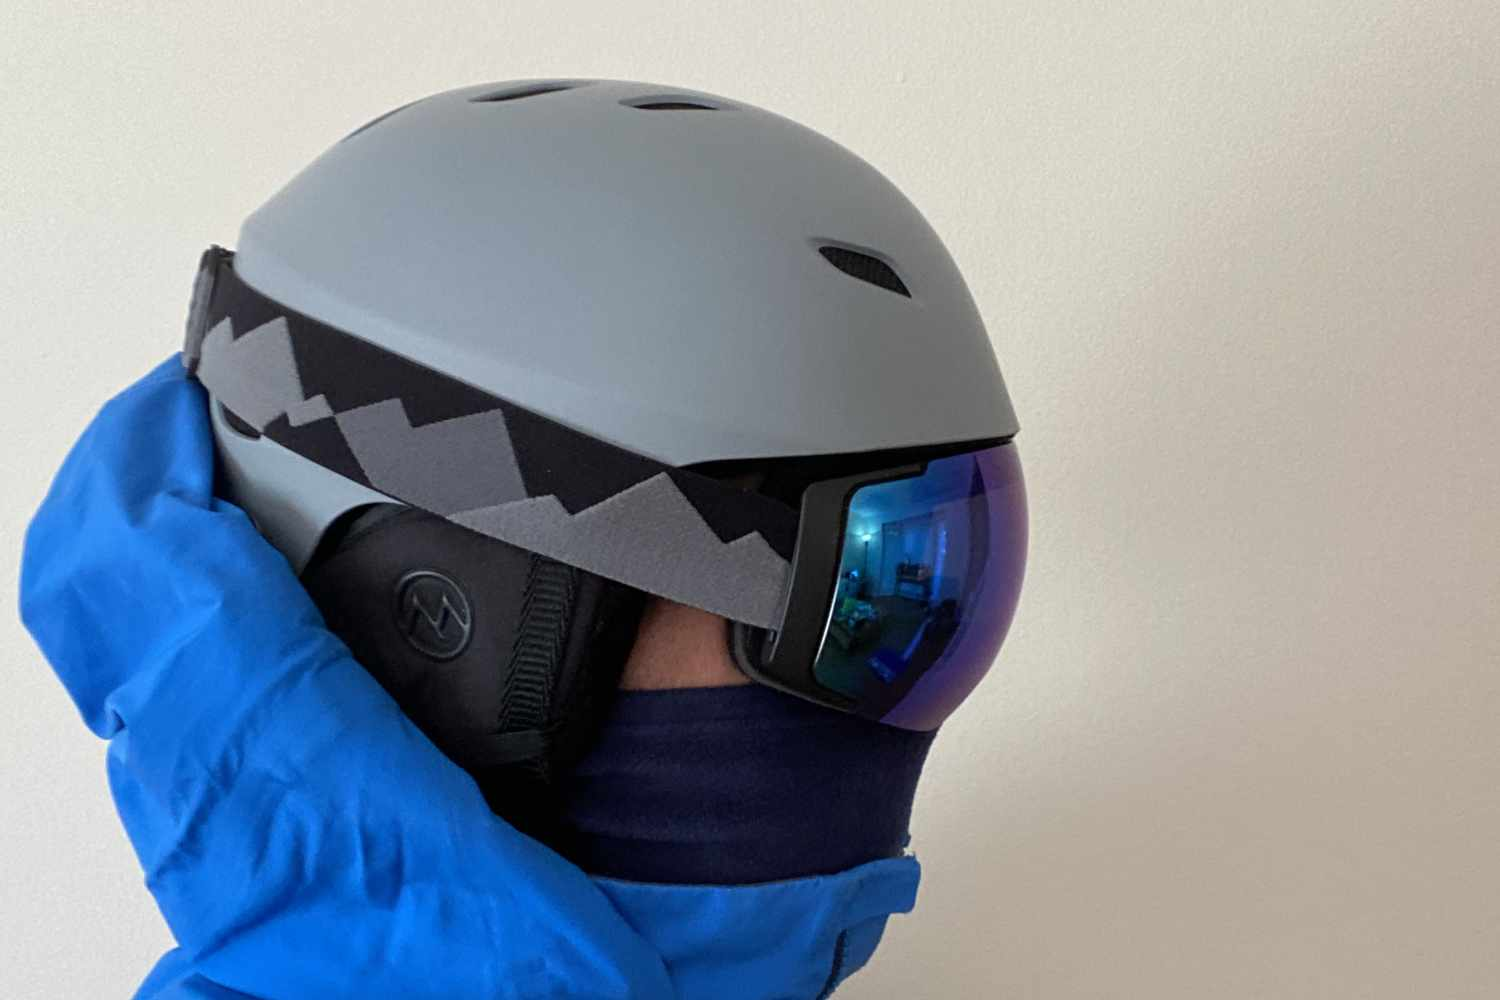 helmet side view with goggles